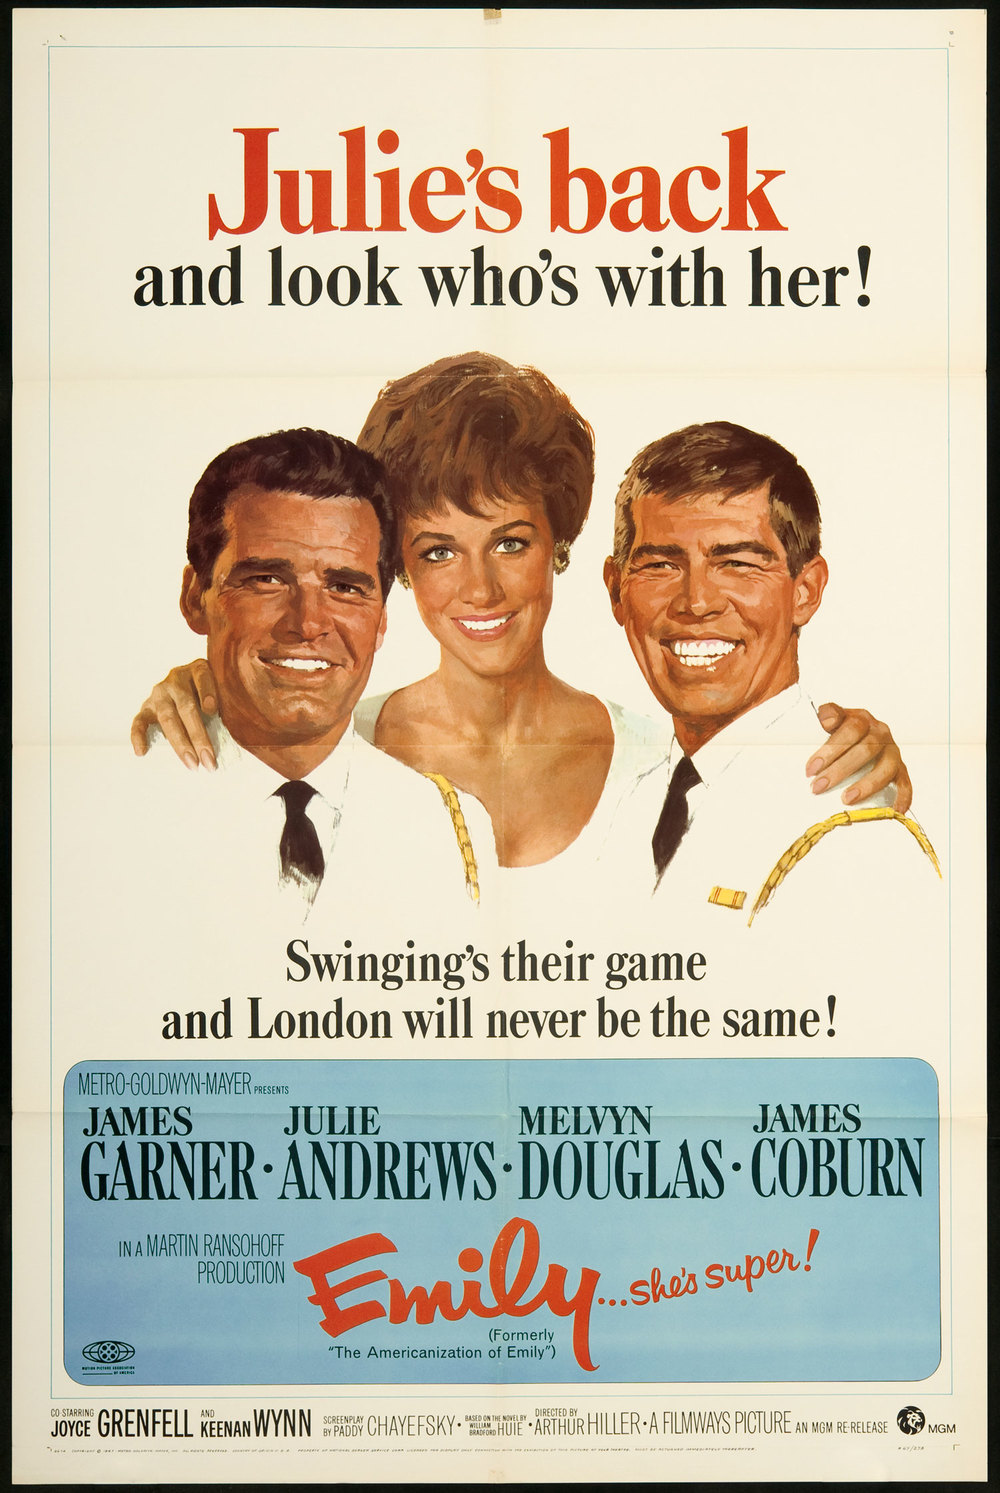 1964 (1967 re-issue), Arthur Hiller